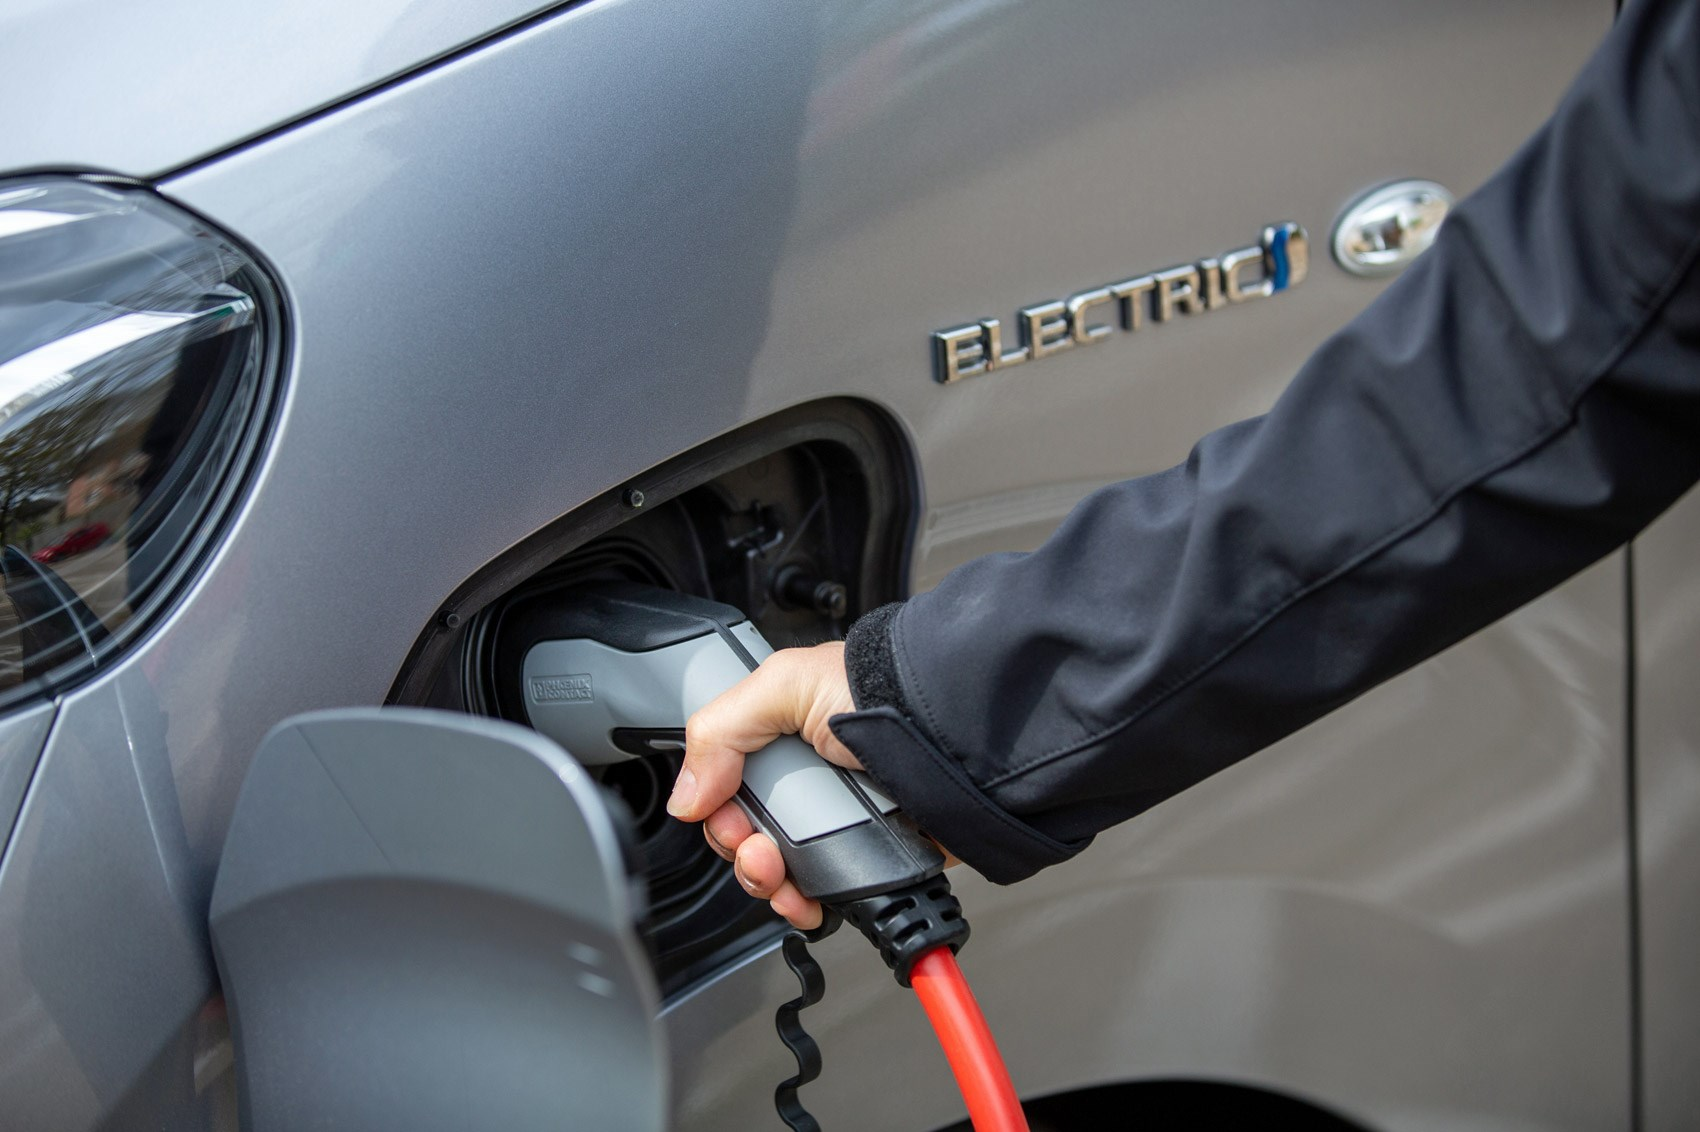 Toyota Proace Electric van review, plugging in to charge